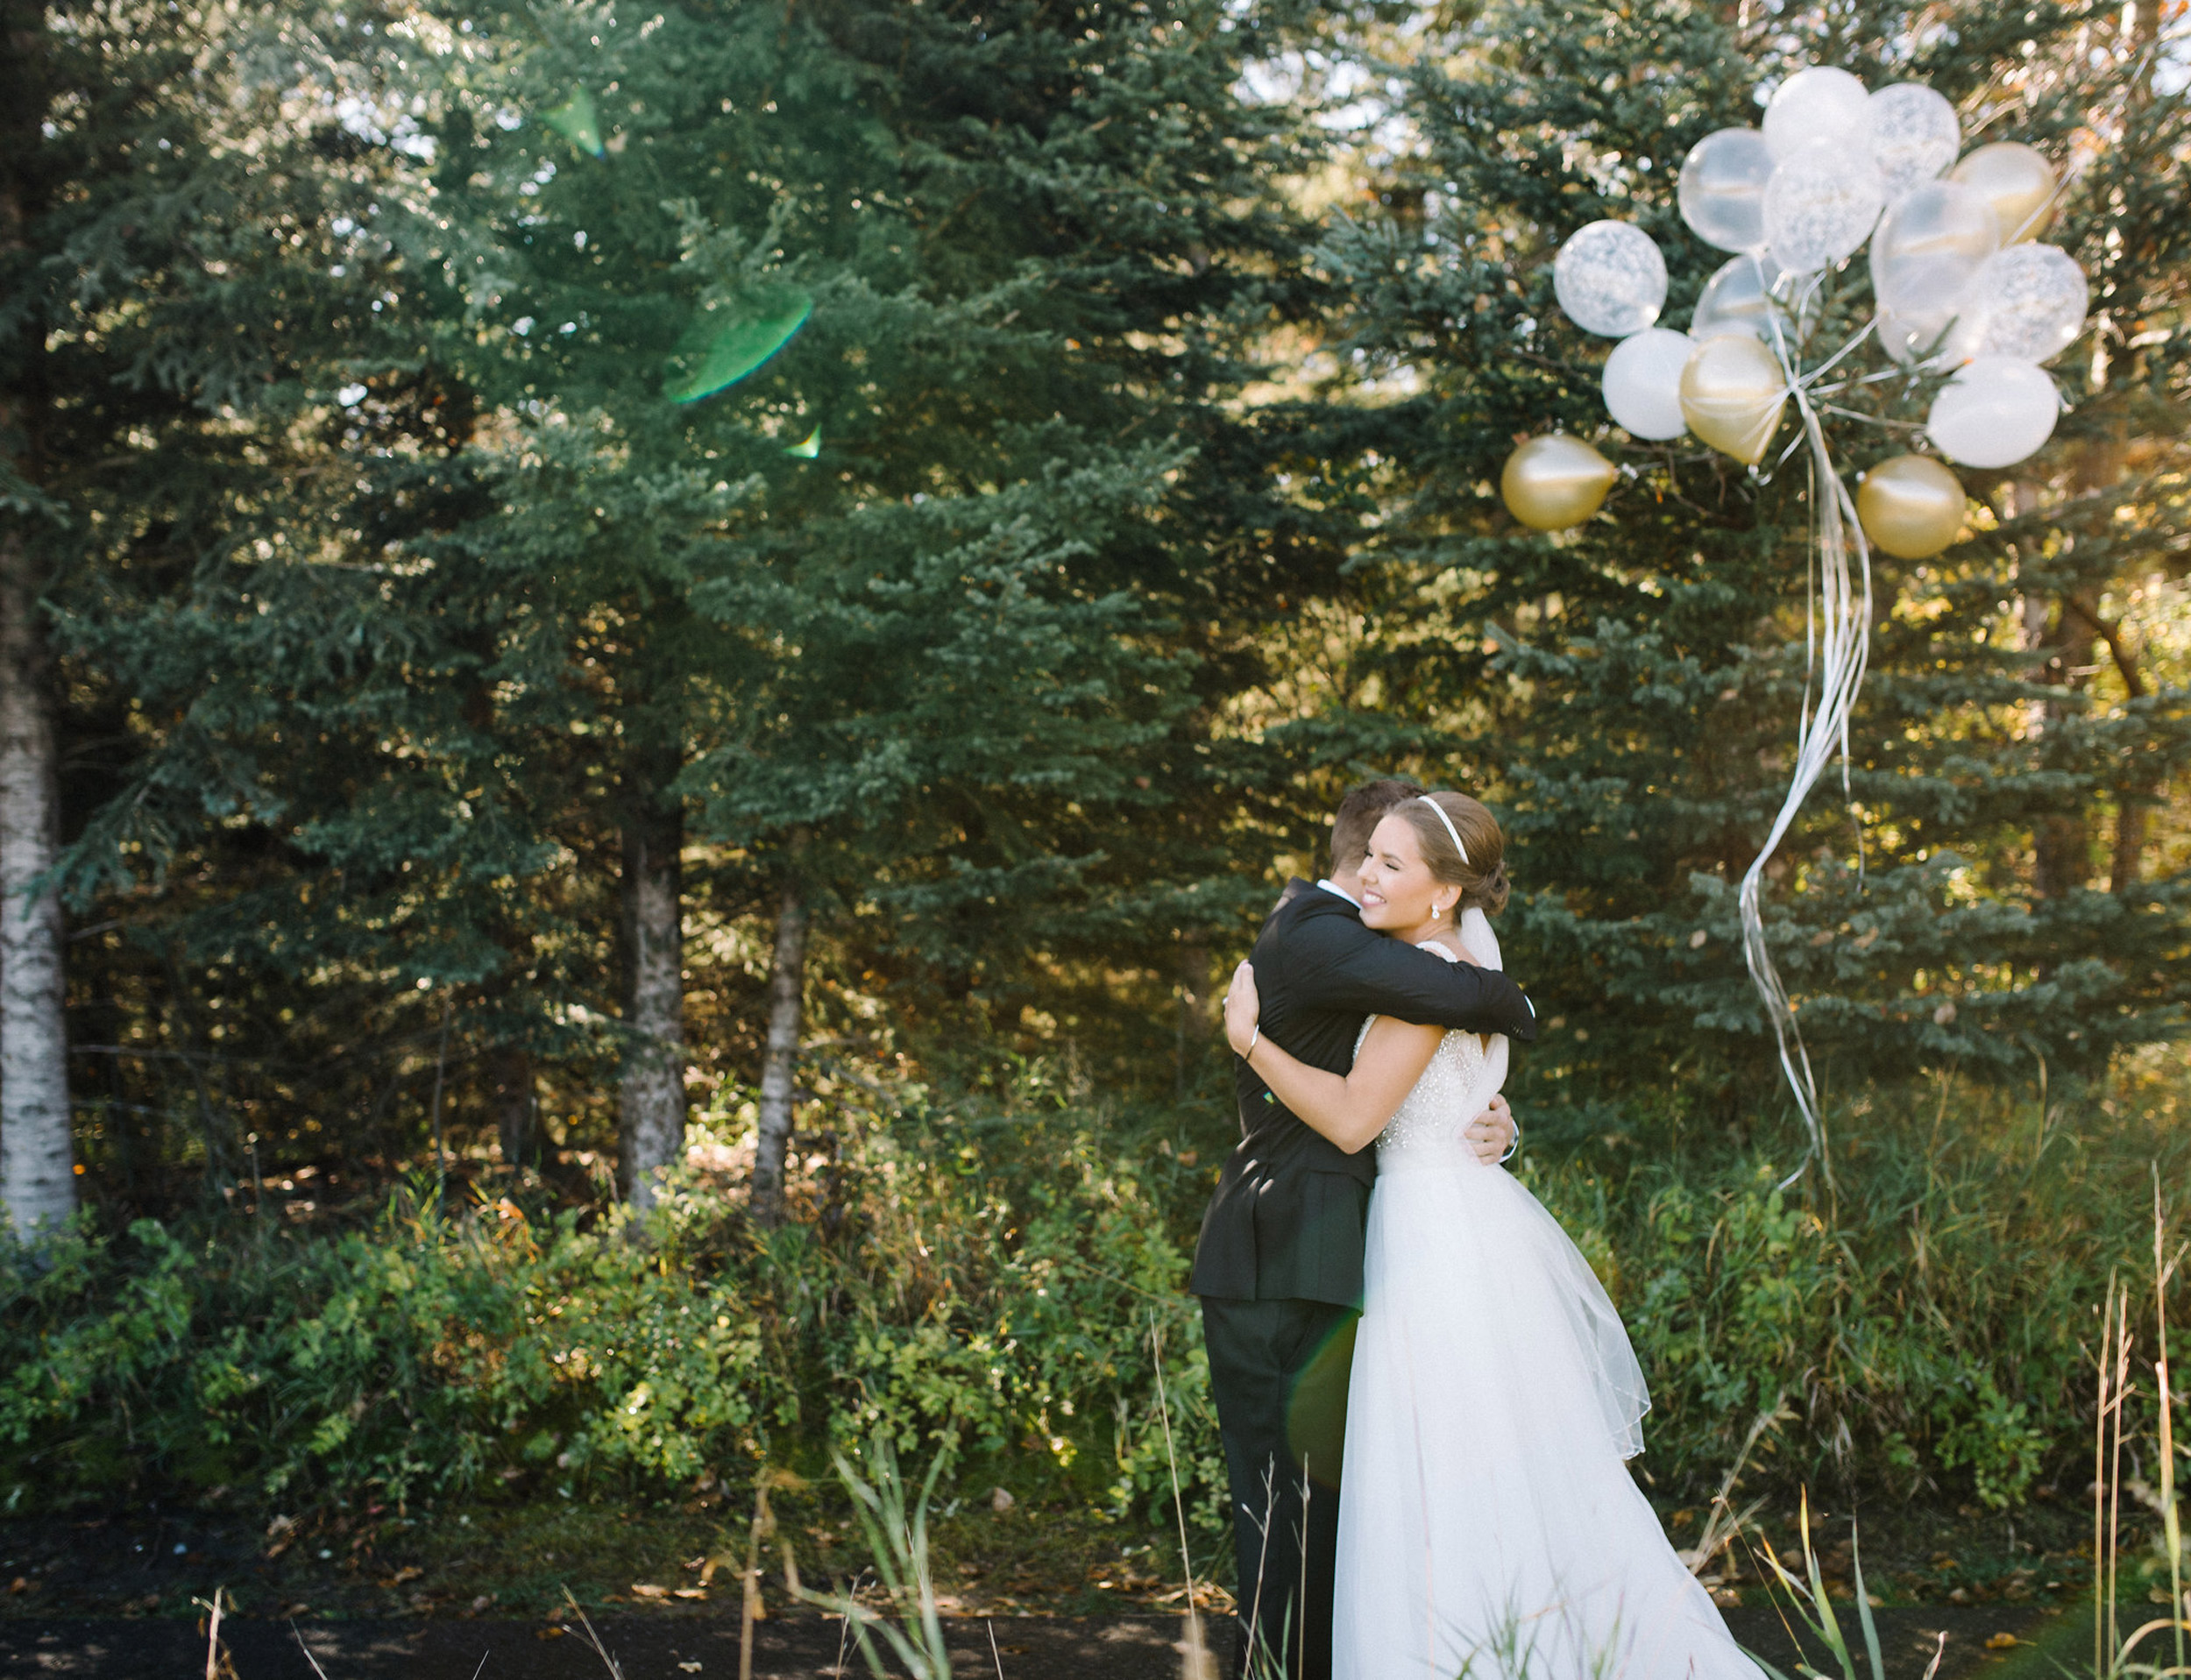 023-calgary_wedding_photographers.jpg